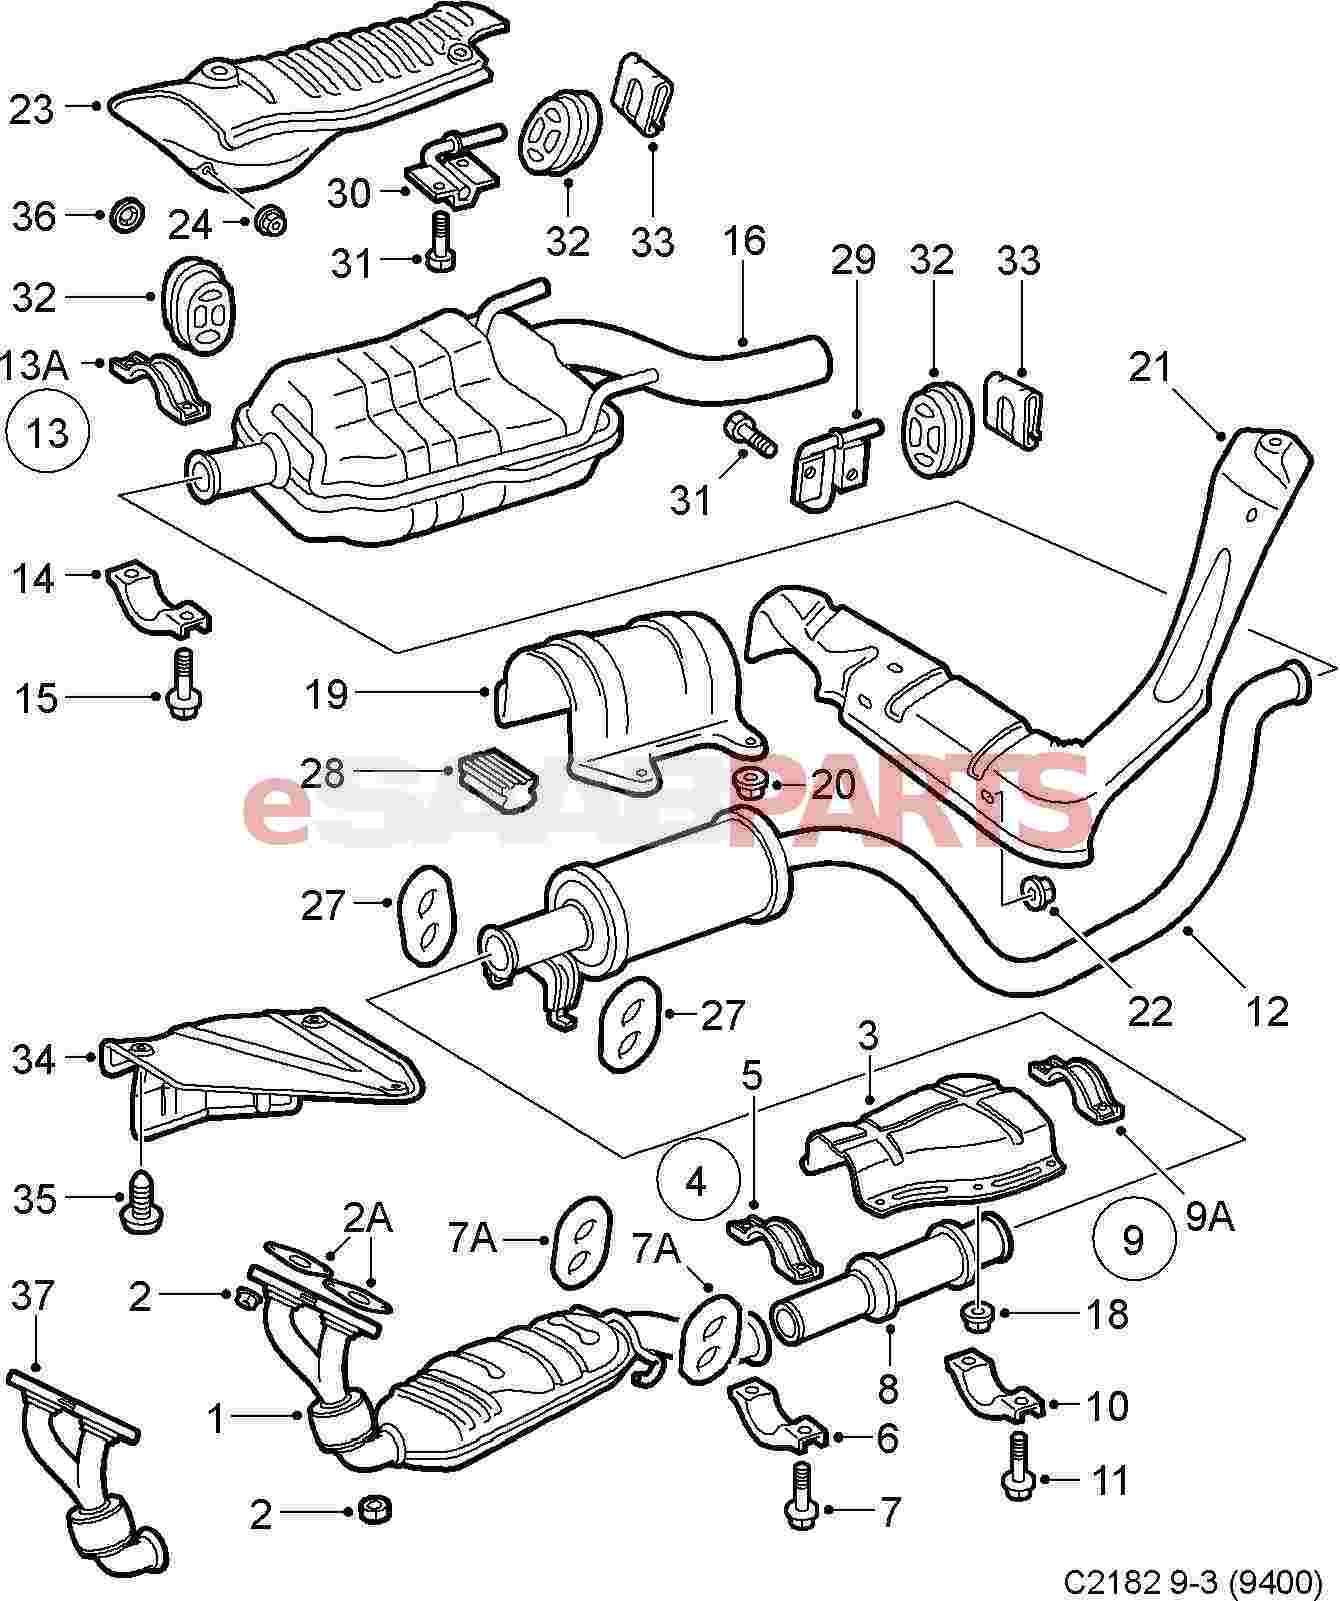 Saab 9 3 Engine Diagram Exhaust Completed Wiring Diagrams Esaabparts Com 9400 U003e Parts Bmw M3